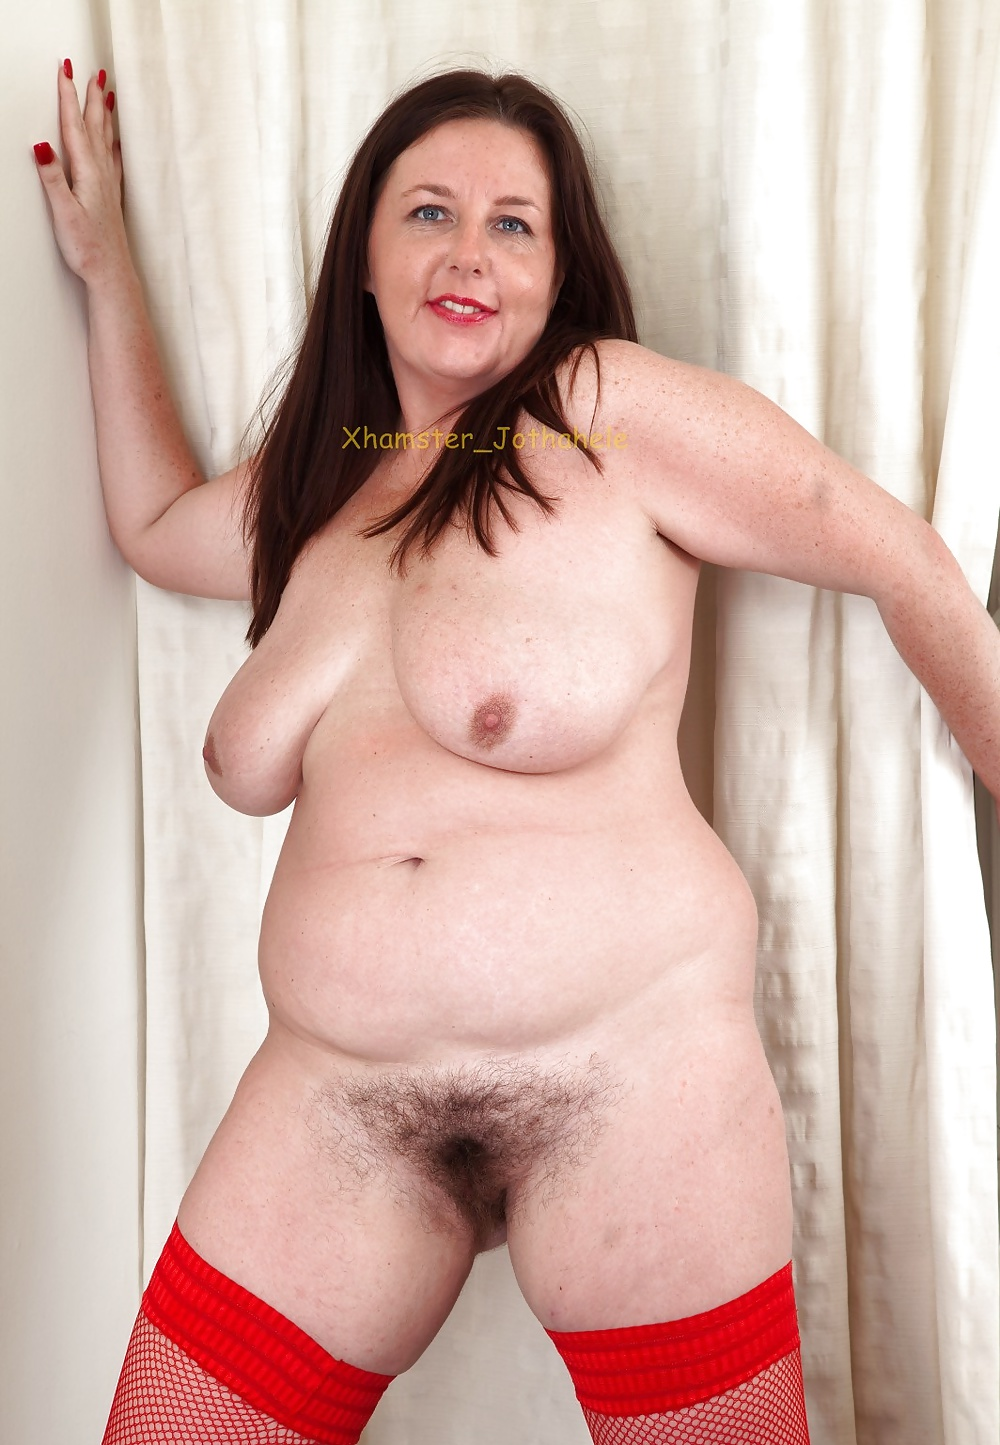 Hairy chubby naked women pictures, free pic big ass